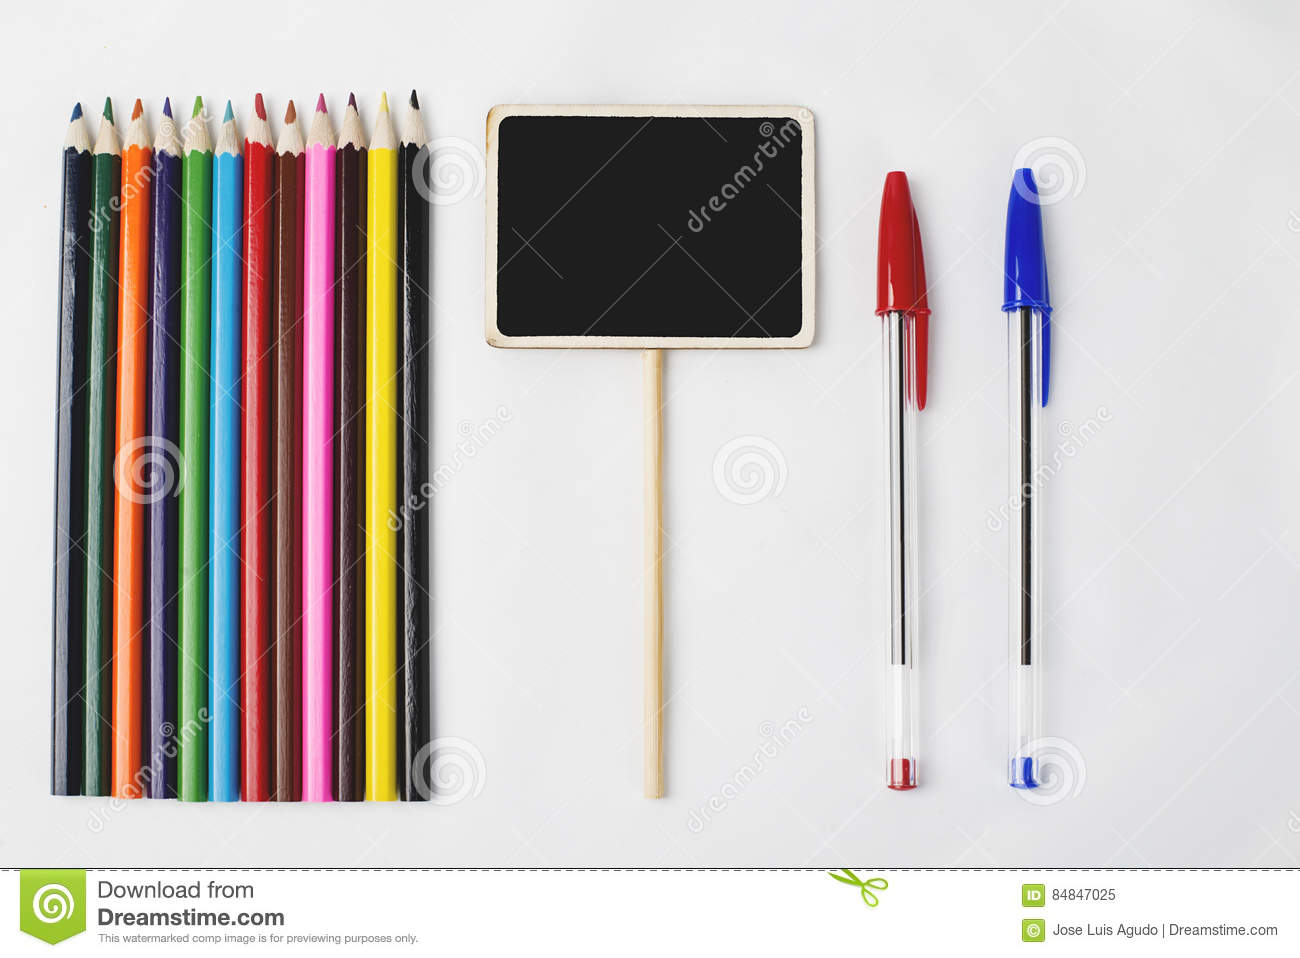 Wooden Pencils Next And Two Pen To Small Square Blackboard On White